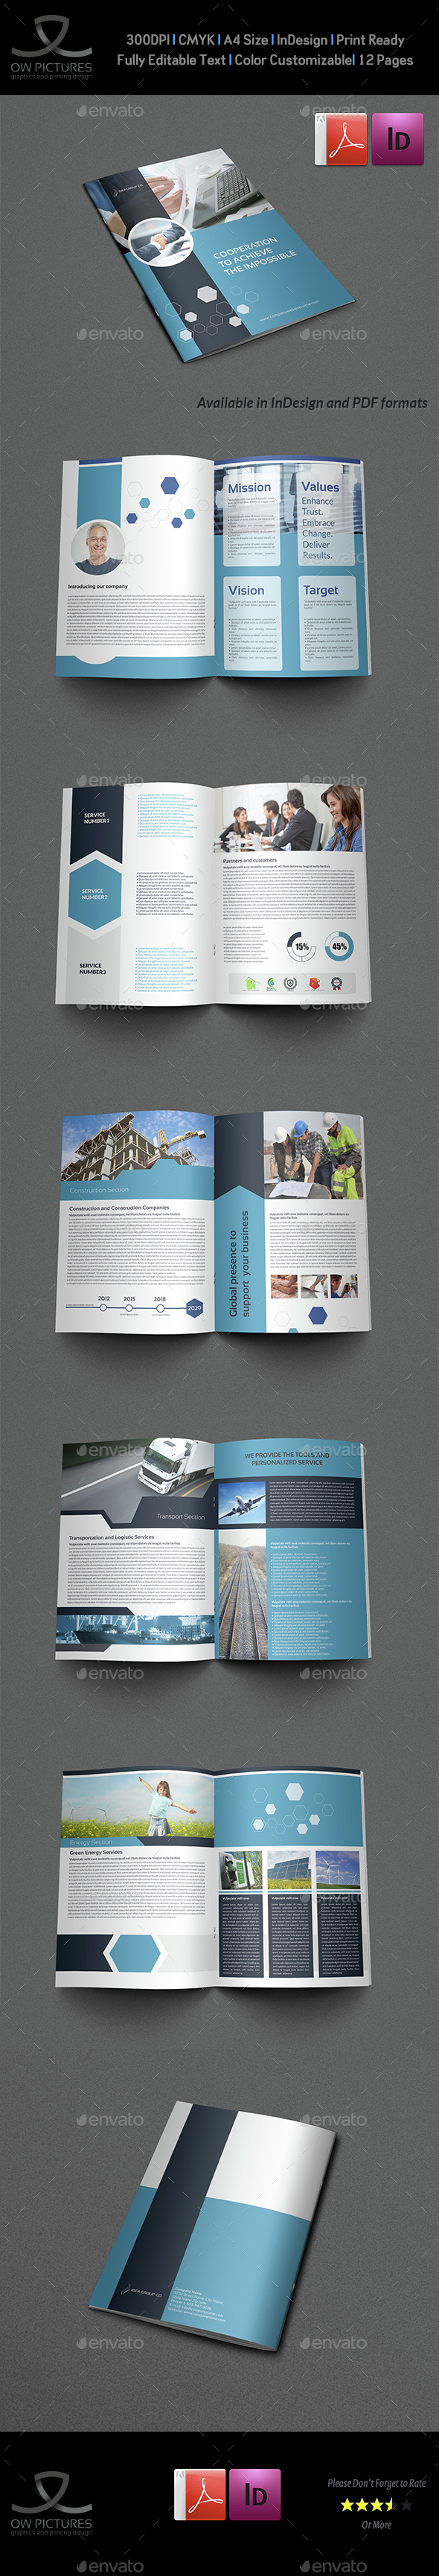 Corporate Brochure Template Vol.42 - 12 Pages - Corporate Brochures